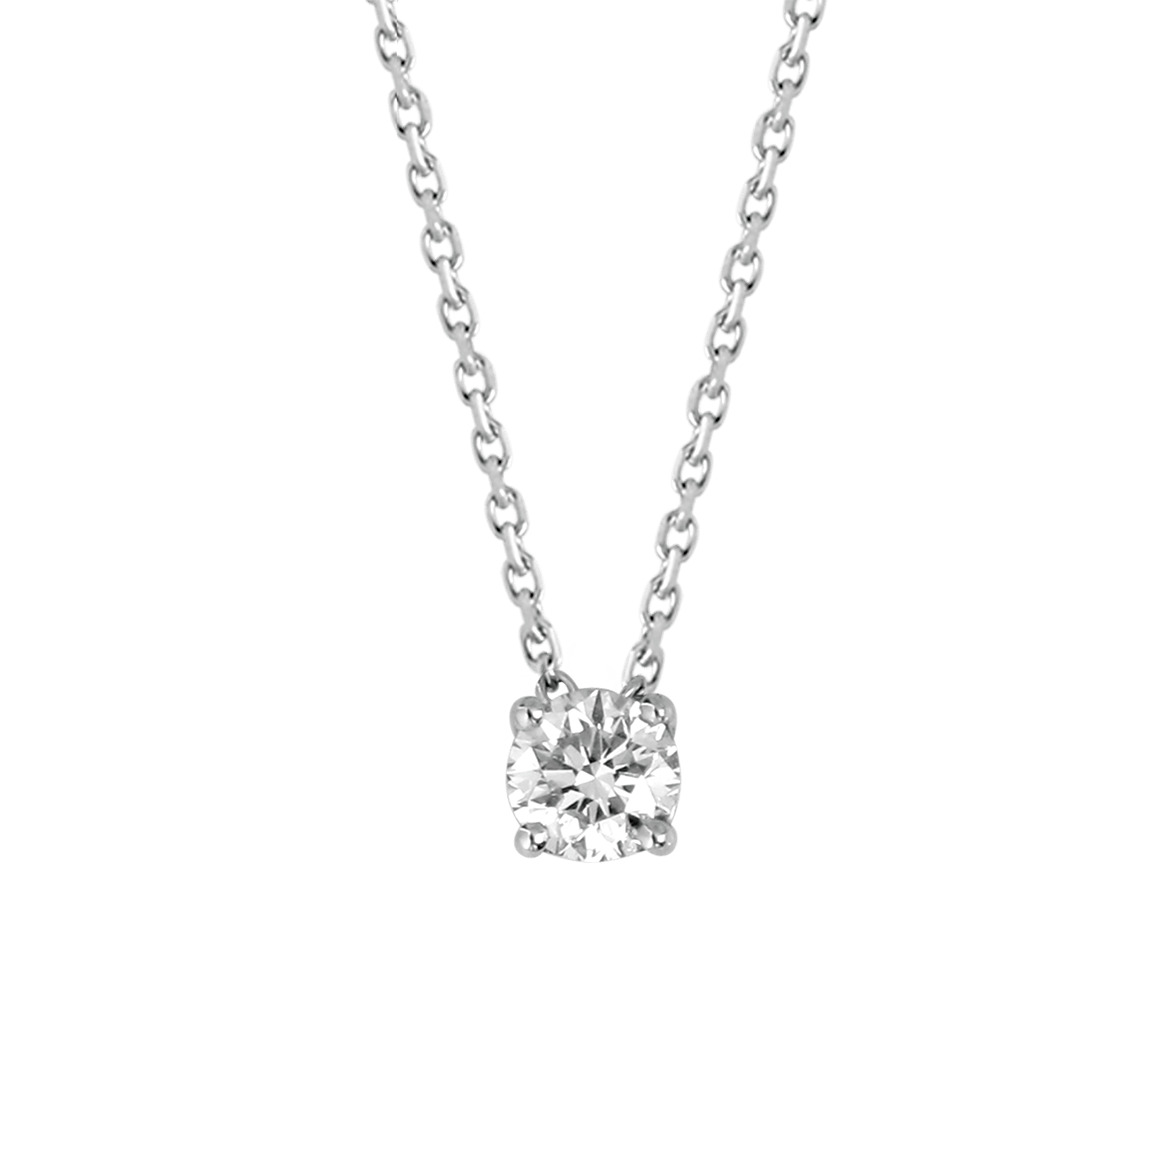 white gold pendant bijoux pendentif diamant solitaire. Black Bedroom Furniture Sets. Home Design Ideas